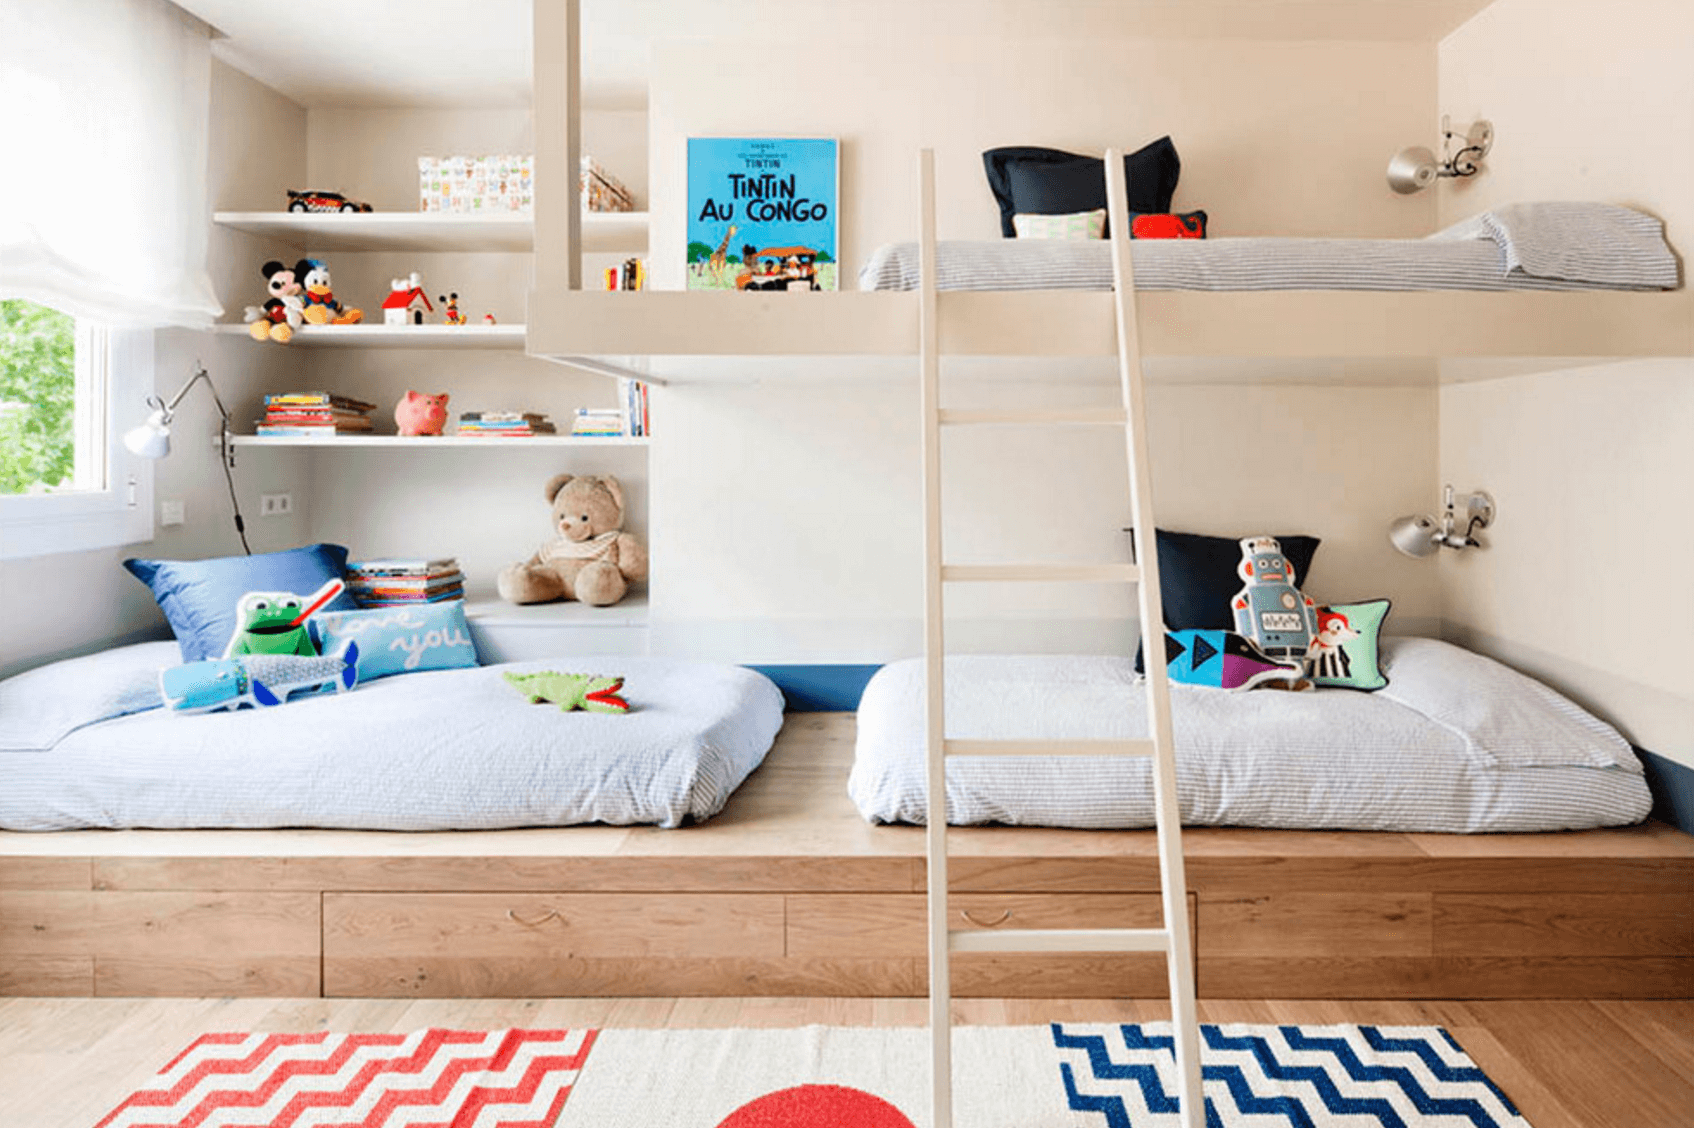 Creative shared bedroom ideas for a modern kids 39 room - Bedroom ideas for 3 year old boy ...